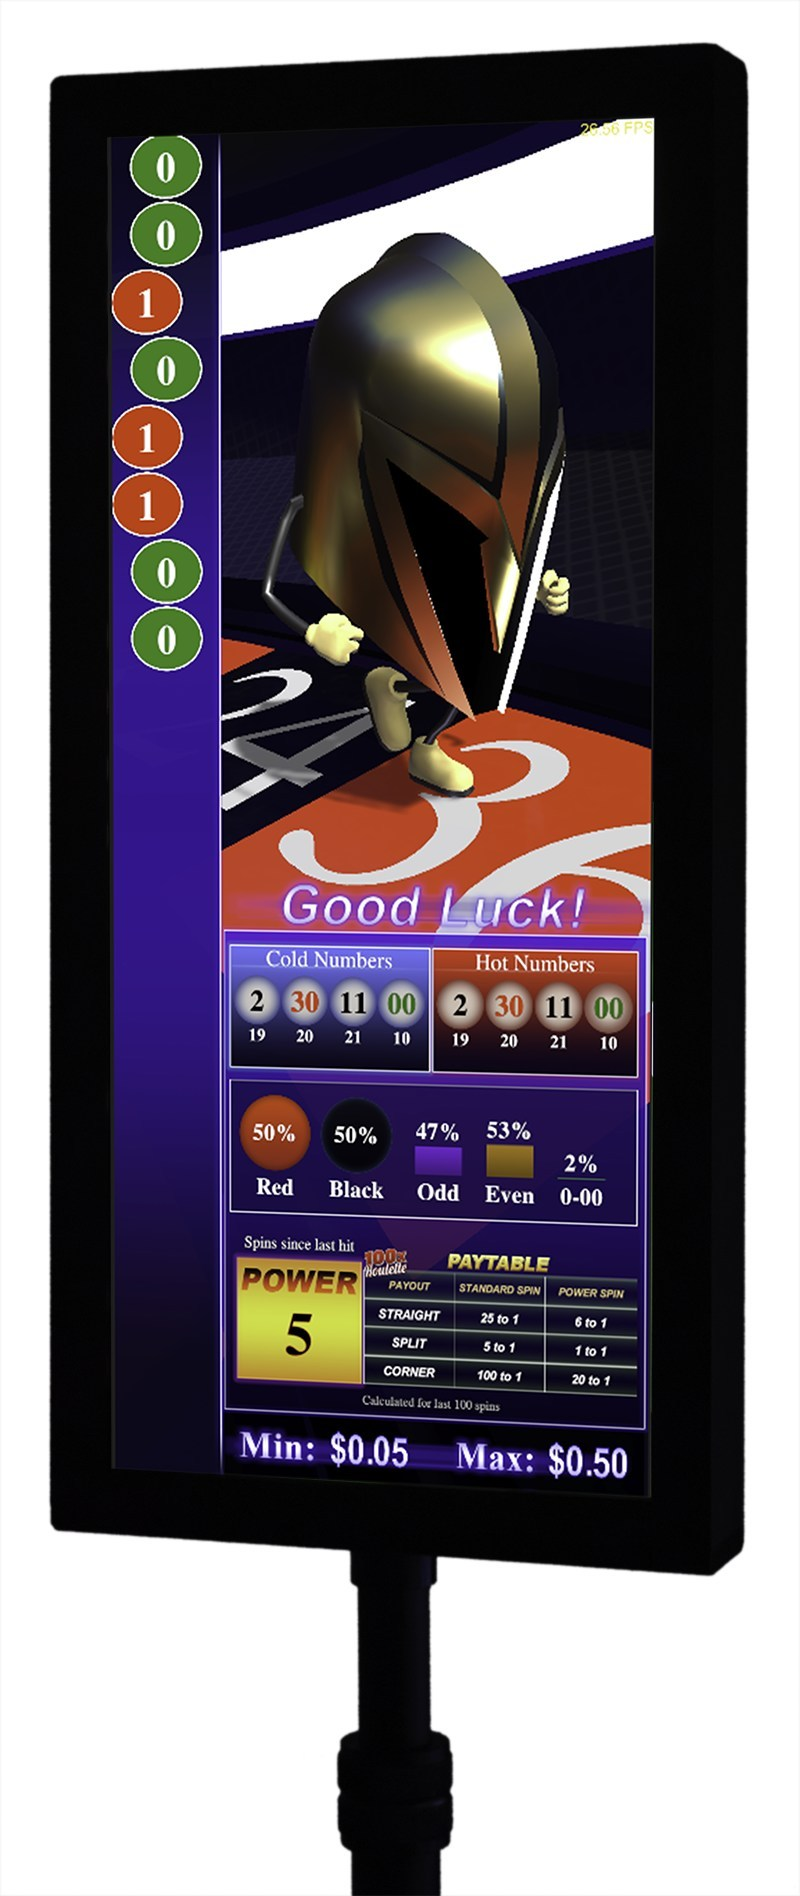 Vegas Golden Knights-inspired animation on AGS roulette signage.